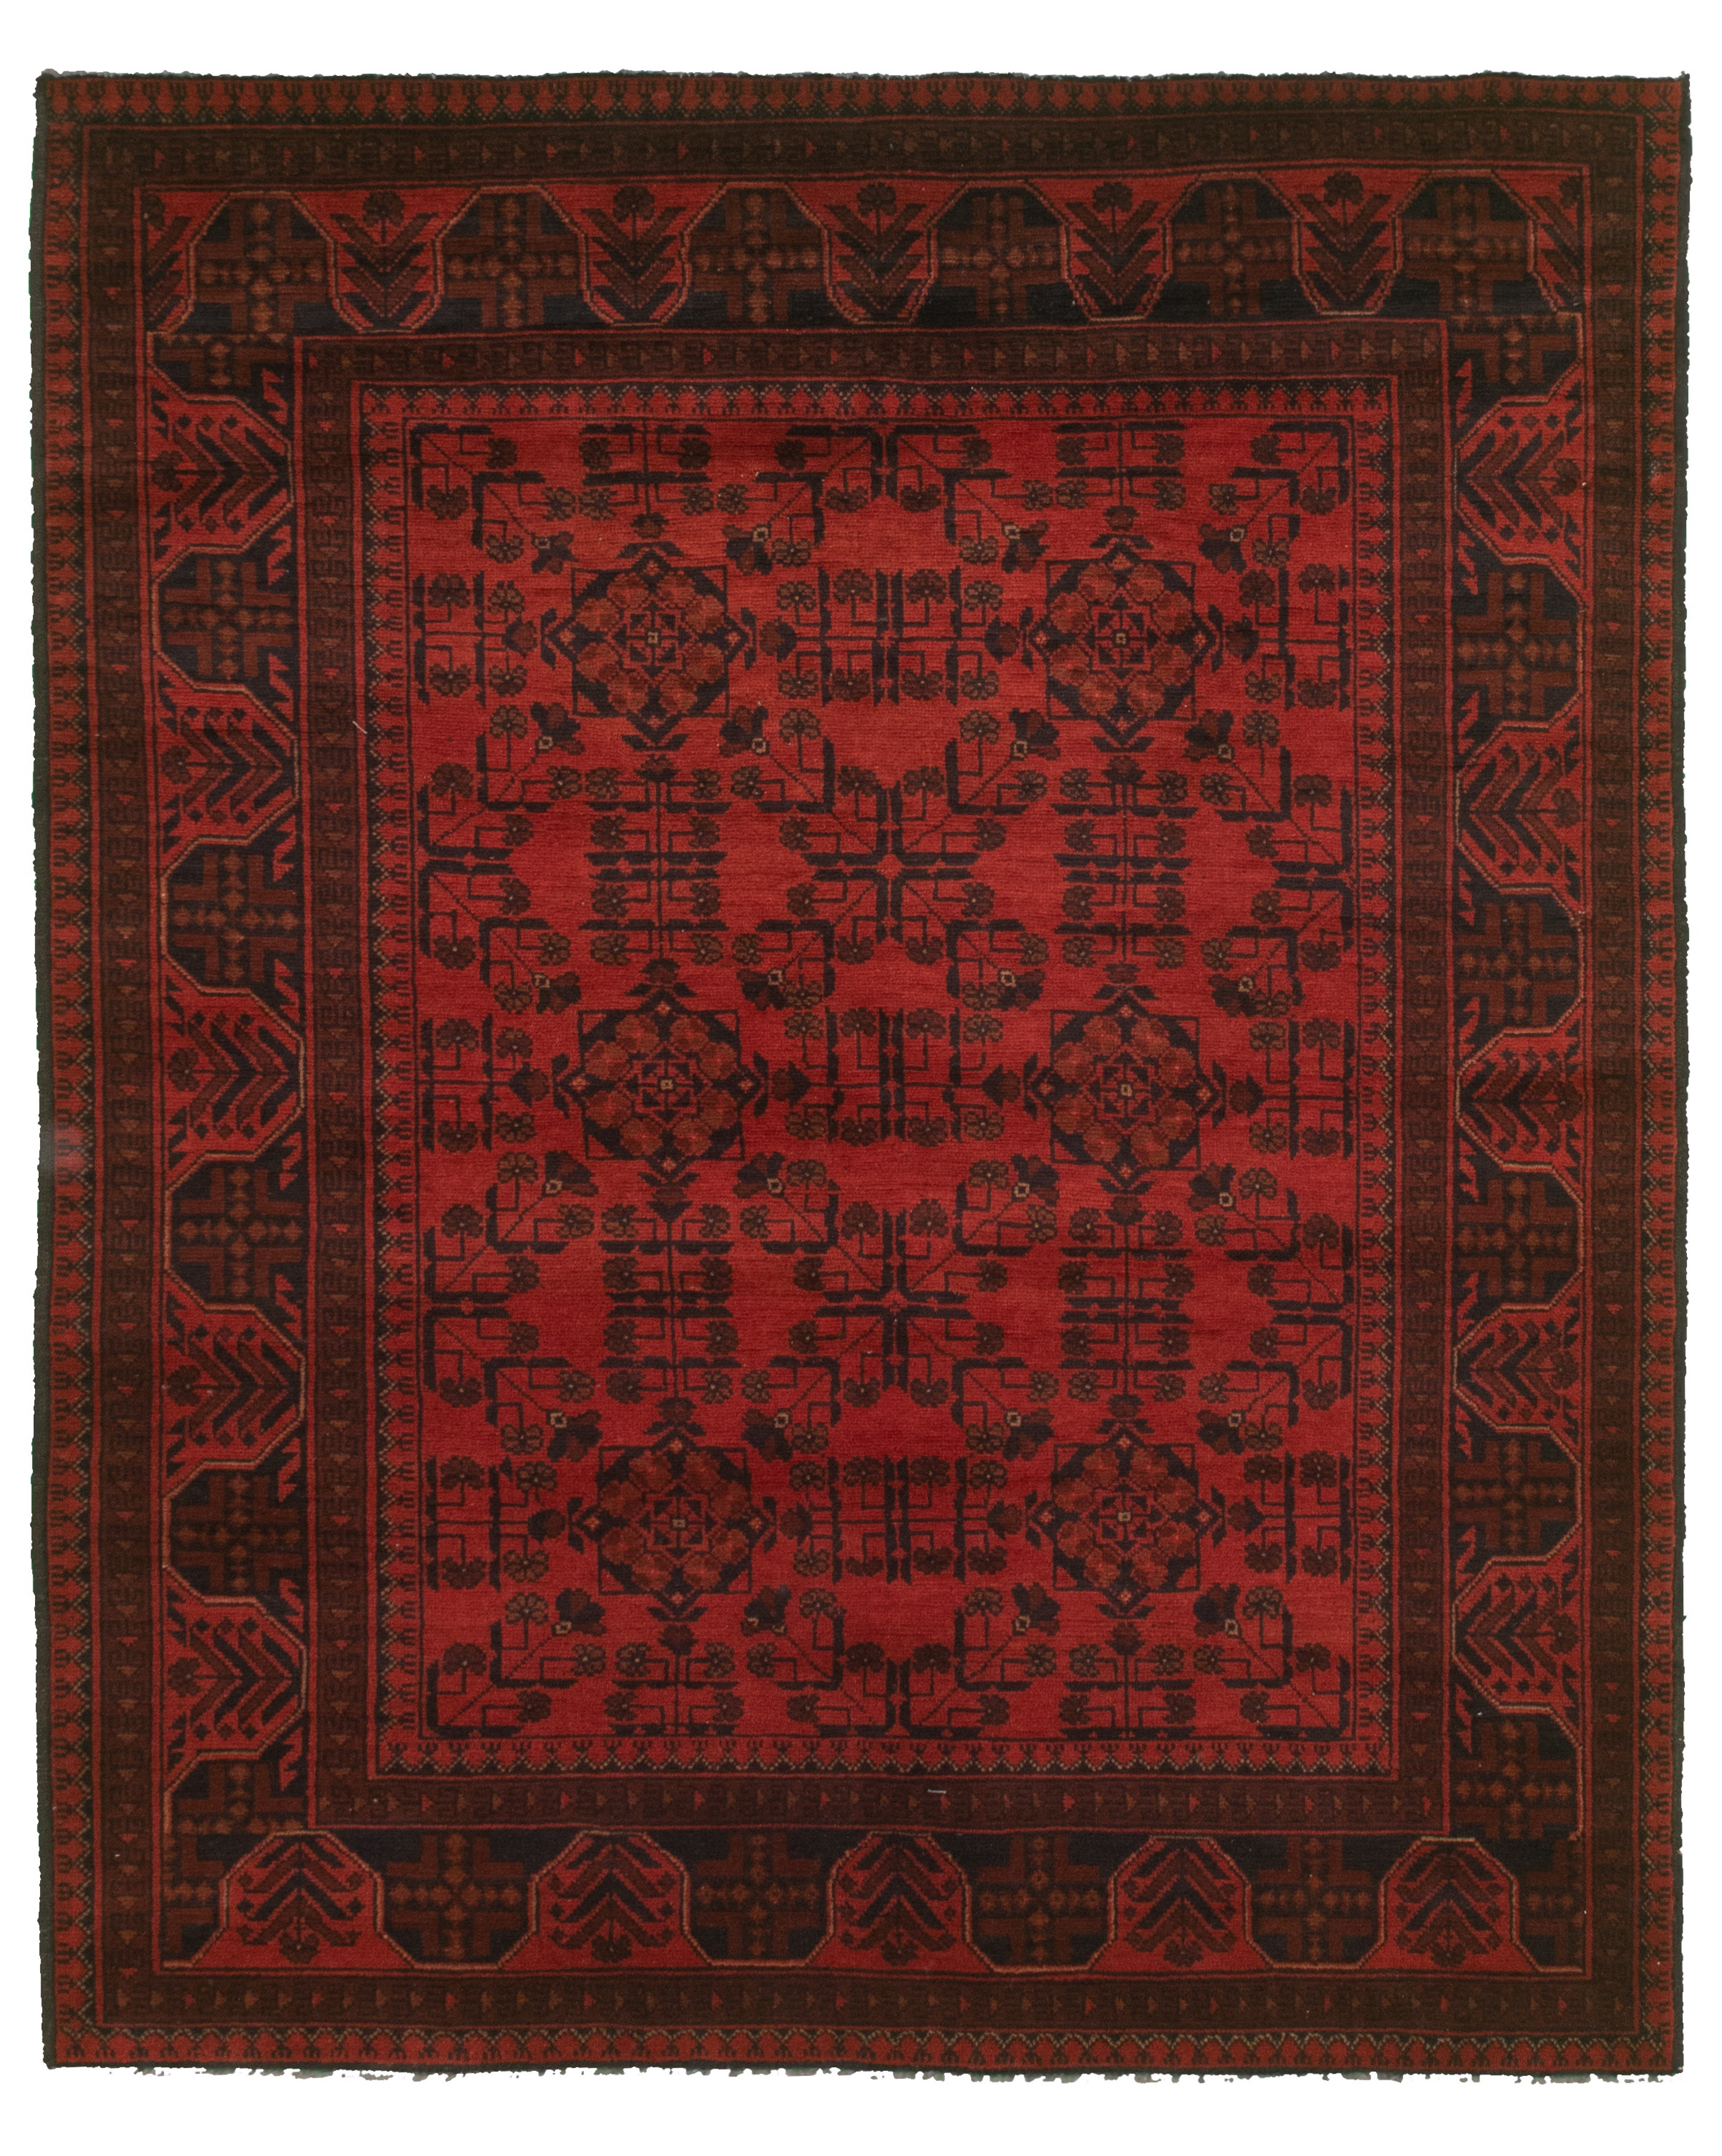 """Hand-knotted Finest Khal Mohammadi Red  Rug 5'2"""" x 6'6""""  Size: 5'2"""" x 6'6"""""""